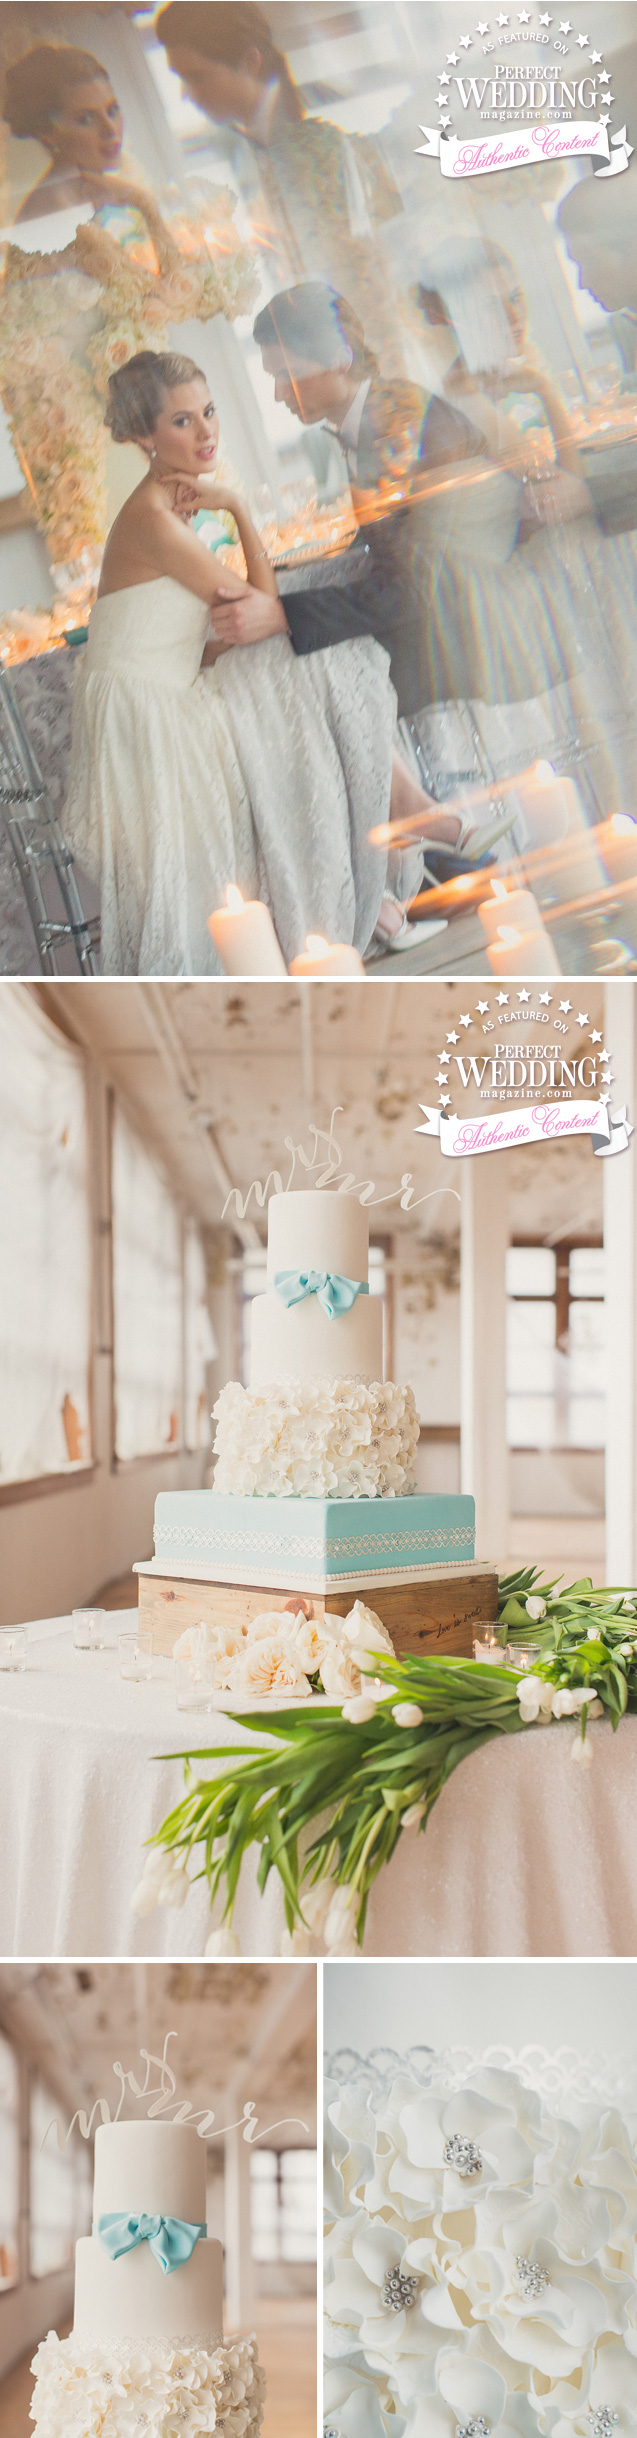 TIFFANY Inspired, Tiffany & Co., Wedding Décor, Cakes, Wedding Flowers, René Caovilla, Truvelle, Perfect Wedding Magazine, Tiffany & Co. Inspired Décor, Bridal Trends